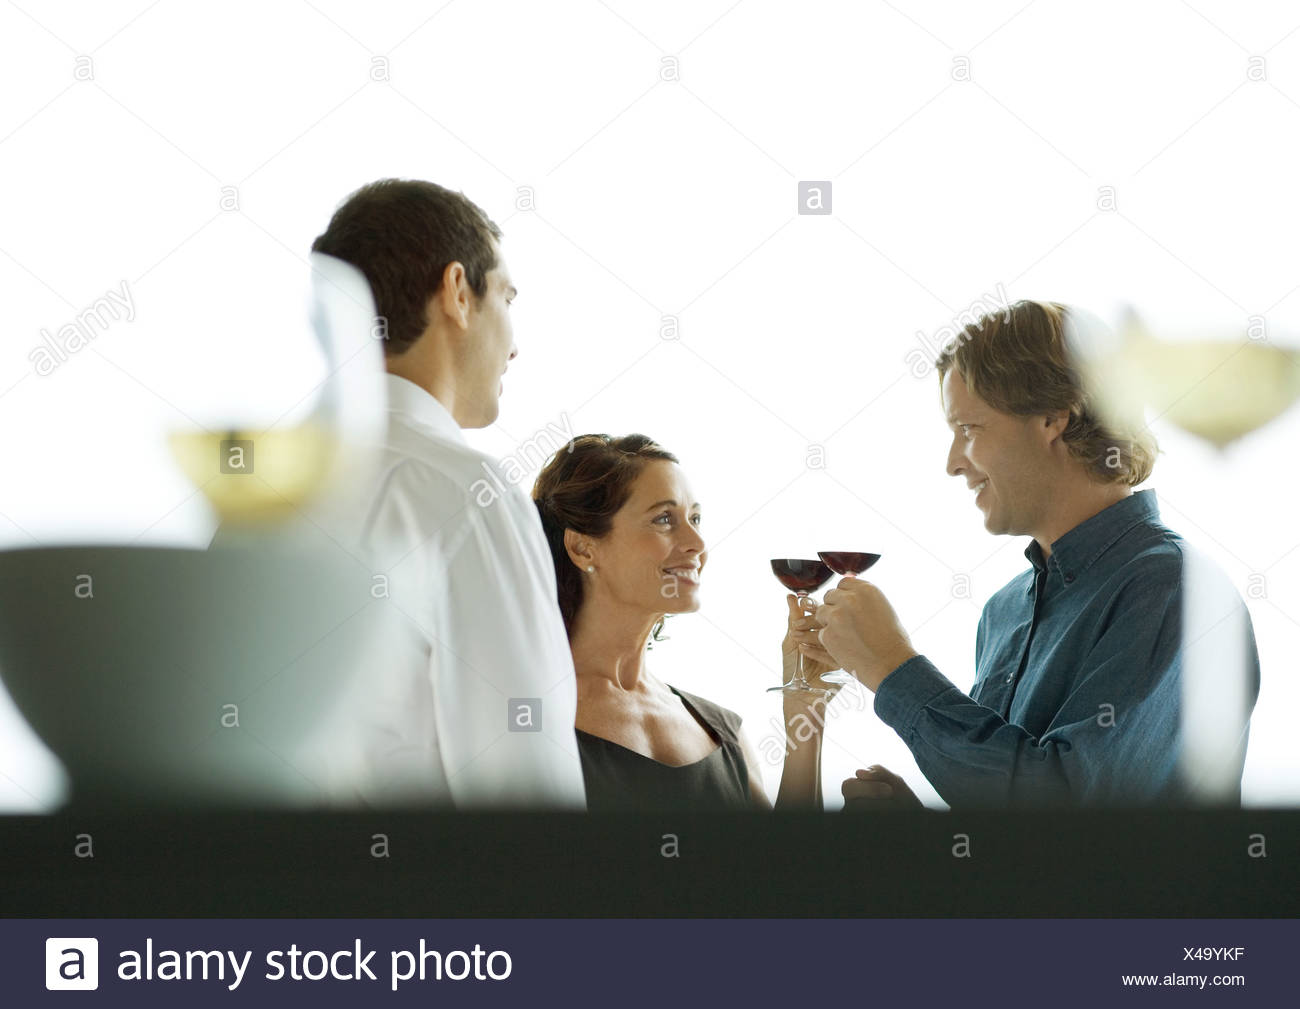 Man and woman clinking glasses during party - Stock Image